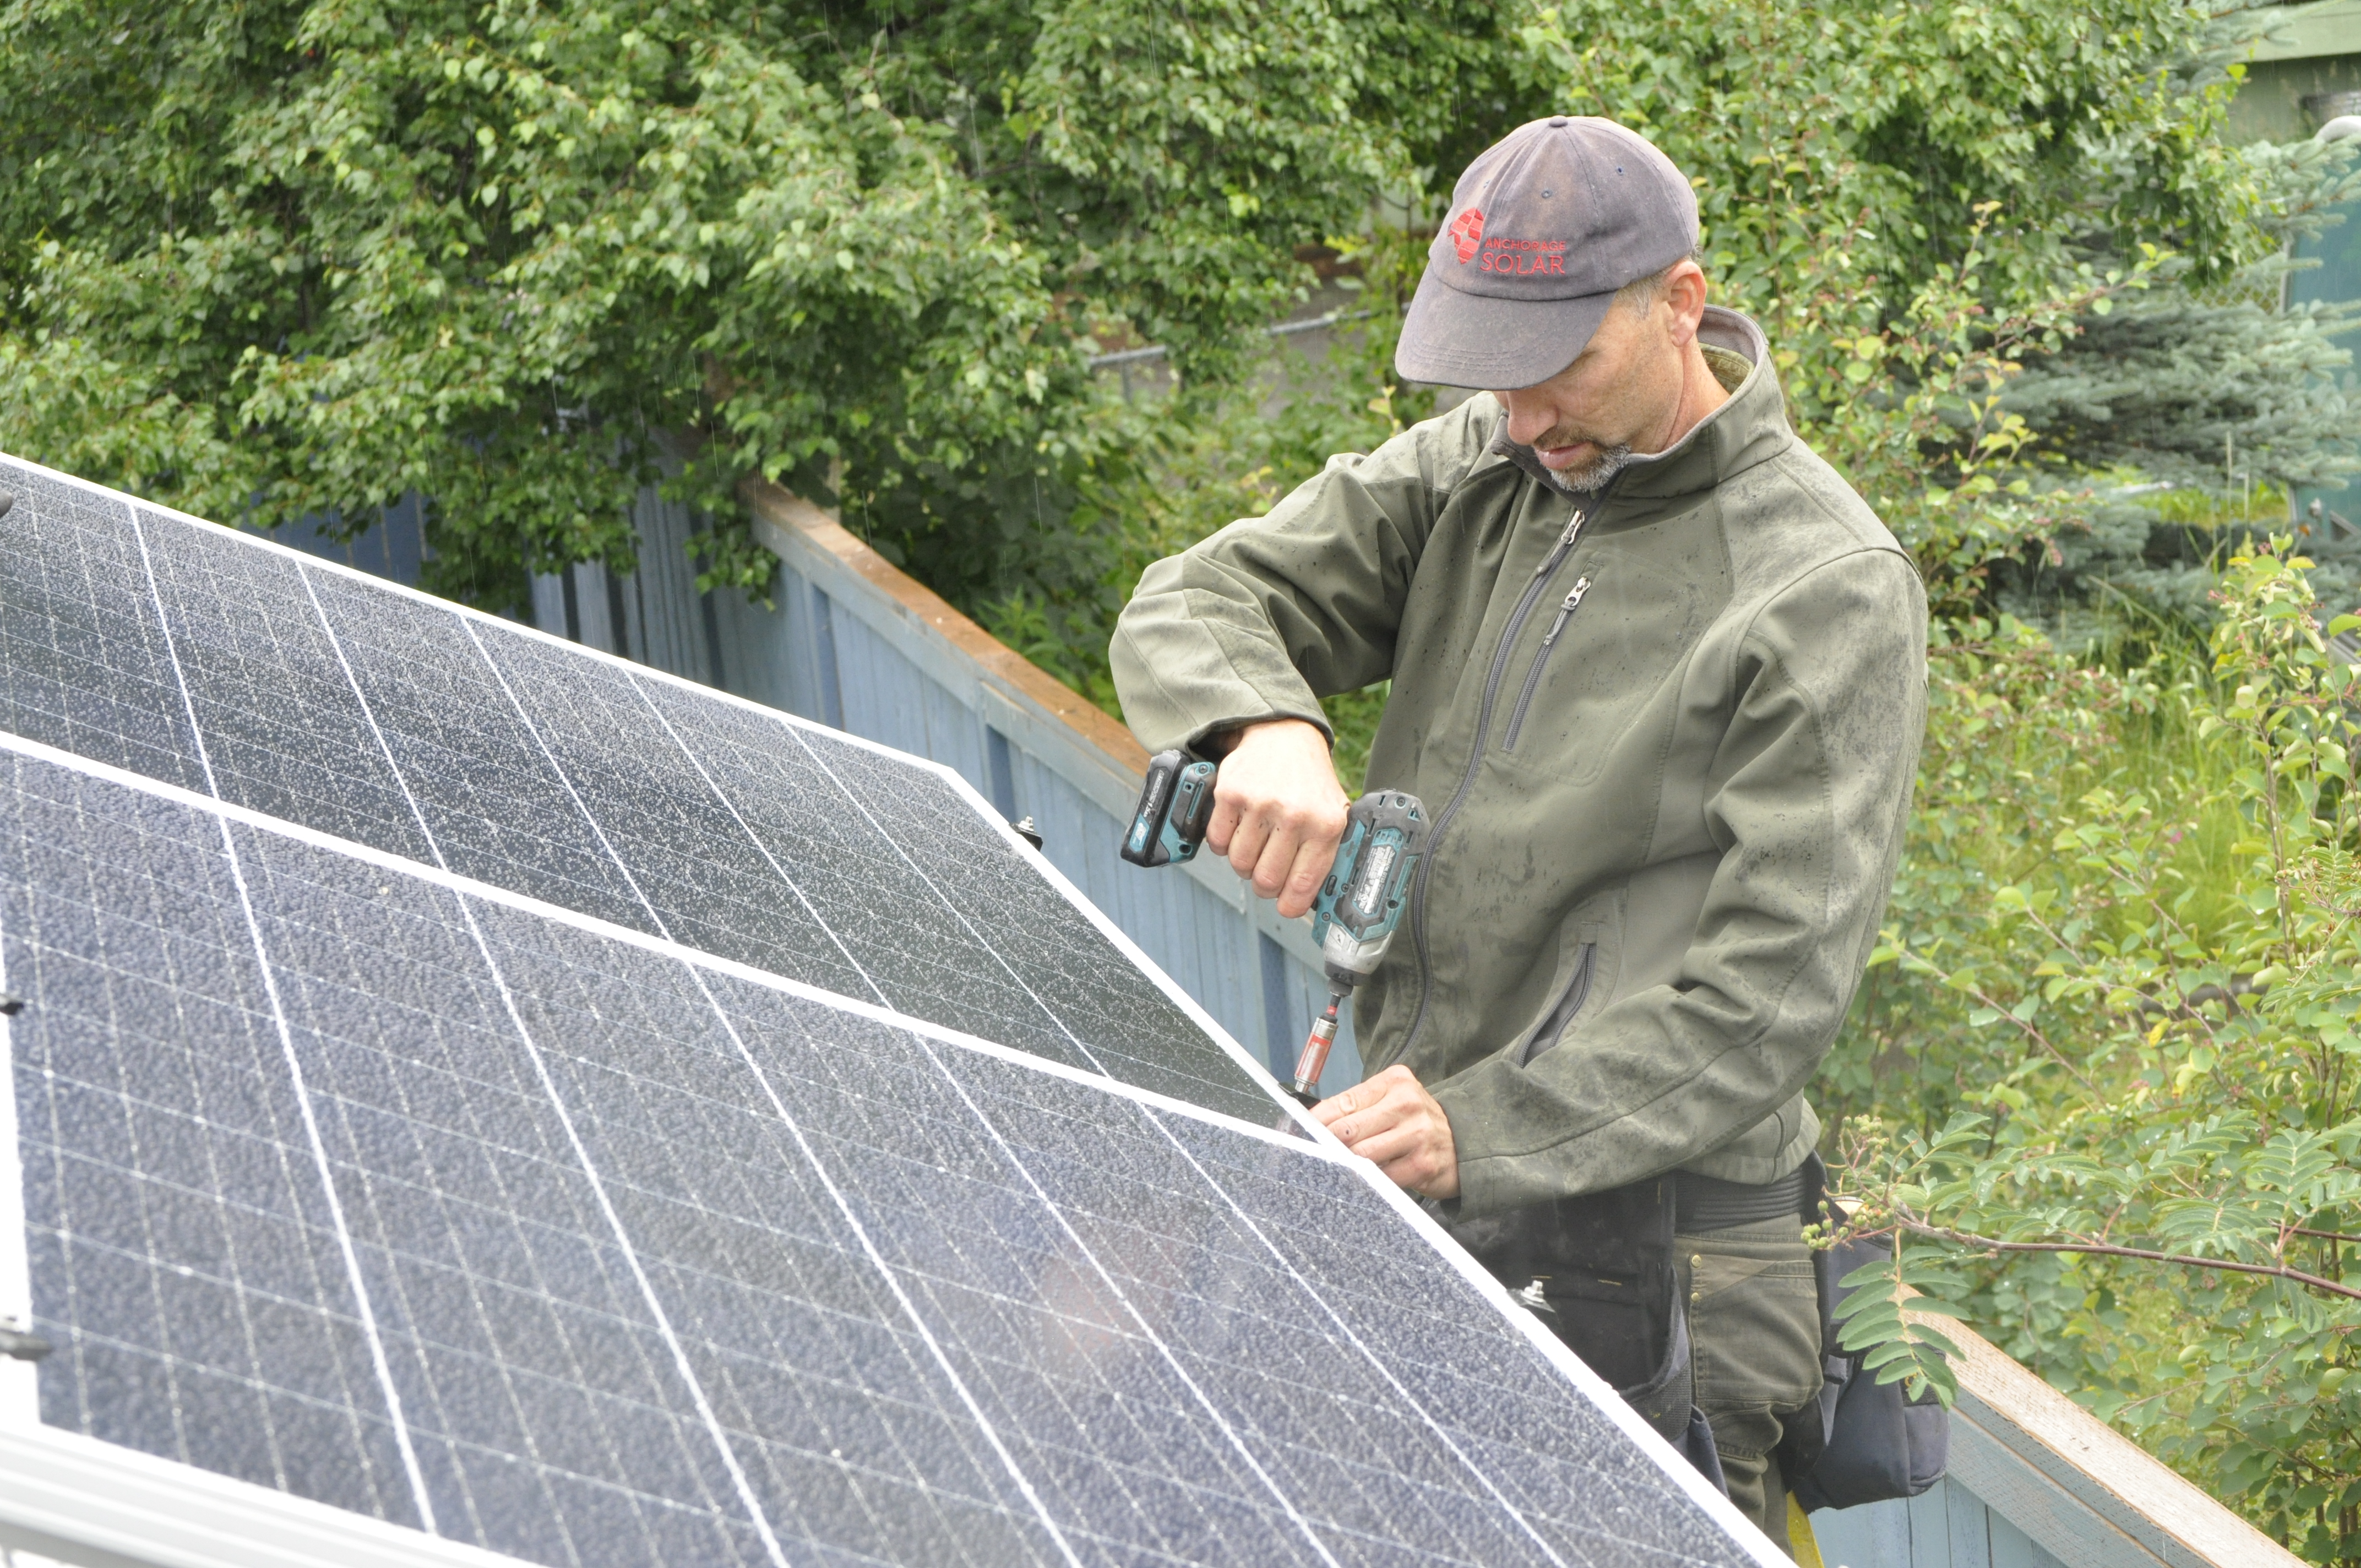 """Anchorage Solar owner Ben May secures a solar panel on Lisa Pekar's garage roof. He said business has increased almost eight-fold since he opened in 2016. """"You caught me mid-way through a costume change,"""" he said. """"I wear many hats."""" (Photo by Erin McKinstry/Alaska Public Media)"""